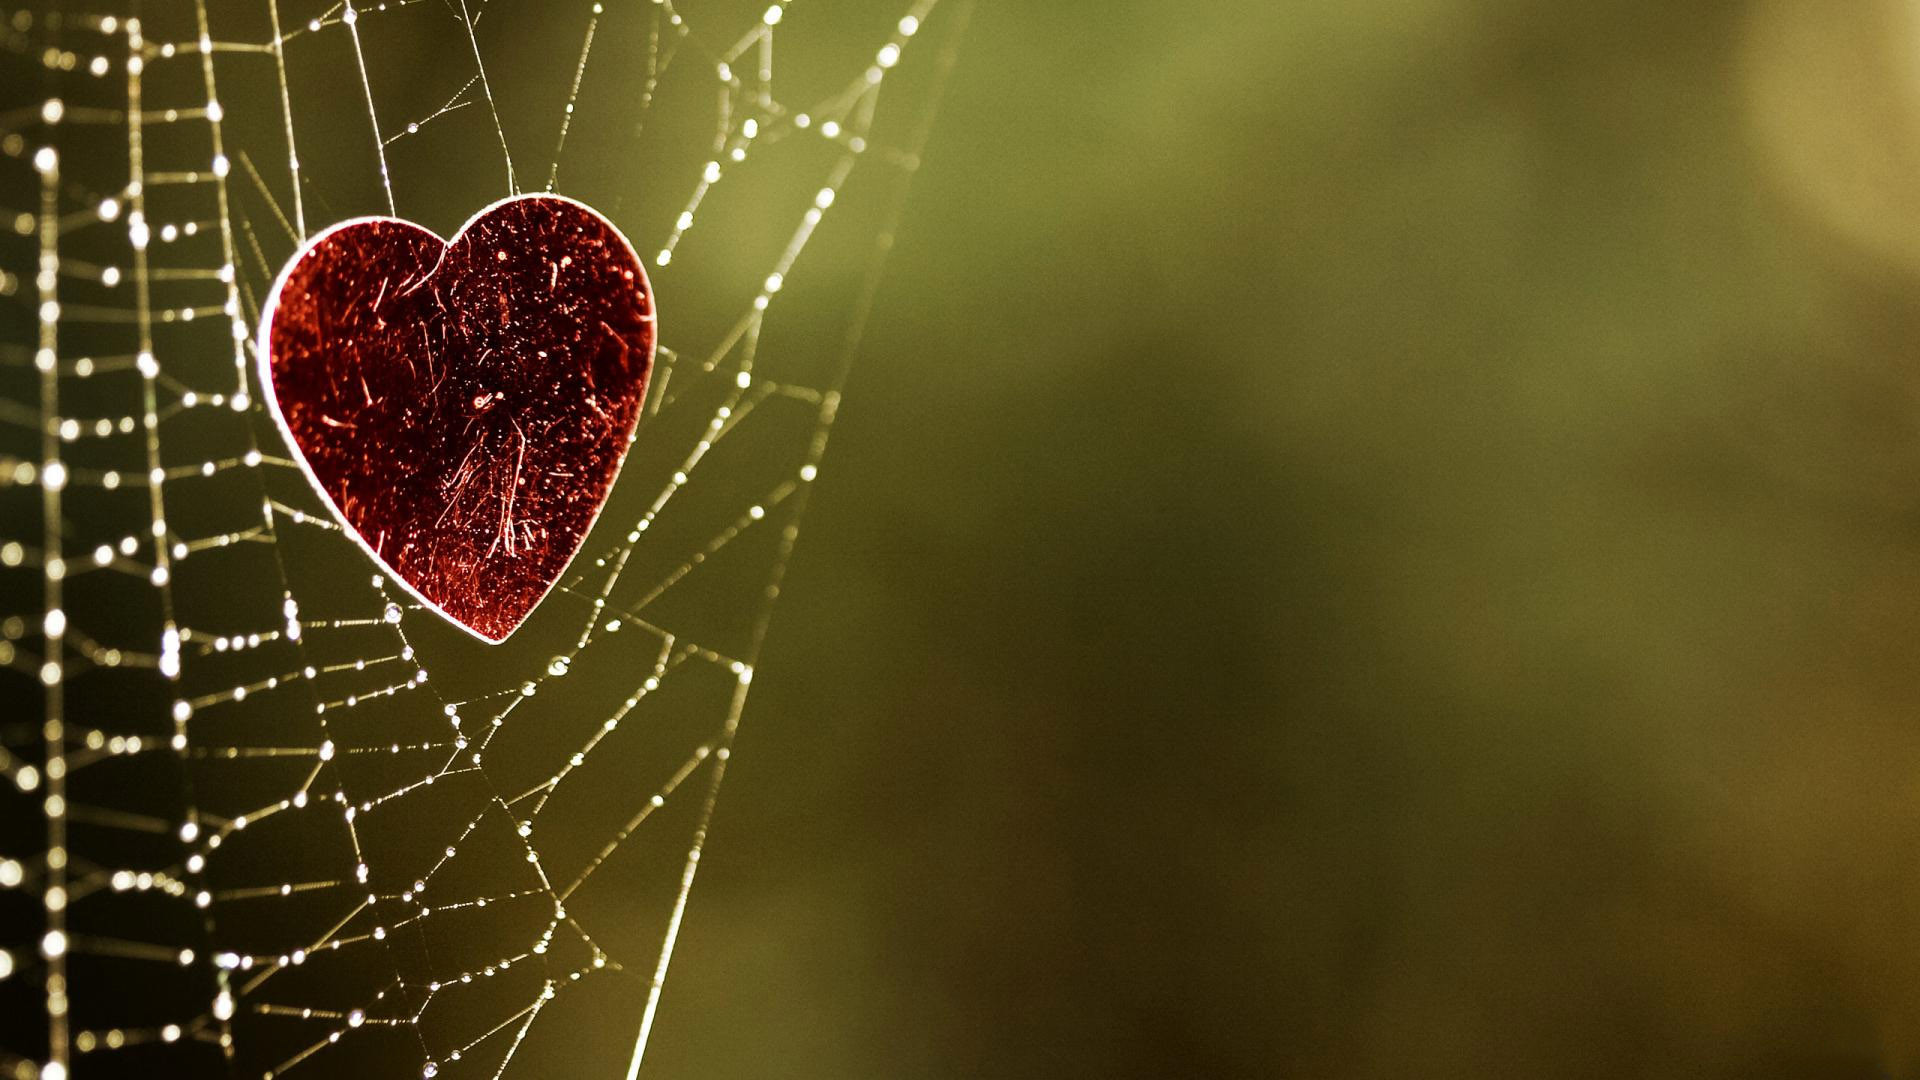 Heart Caught In A Spider Web HD Wallpaper